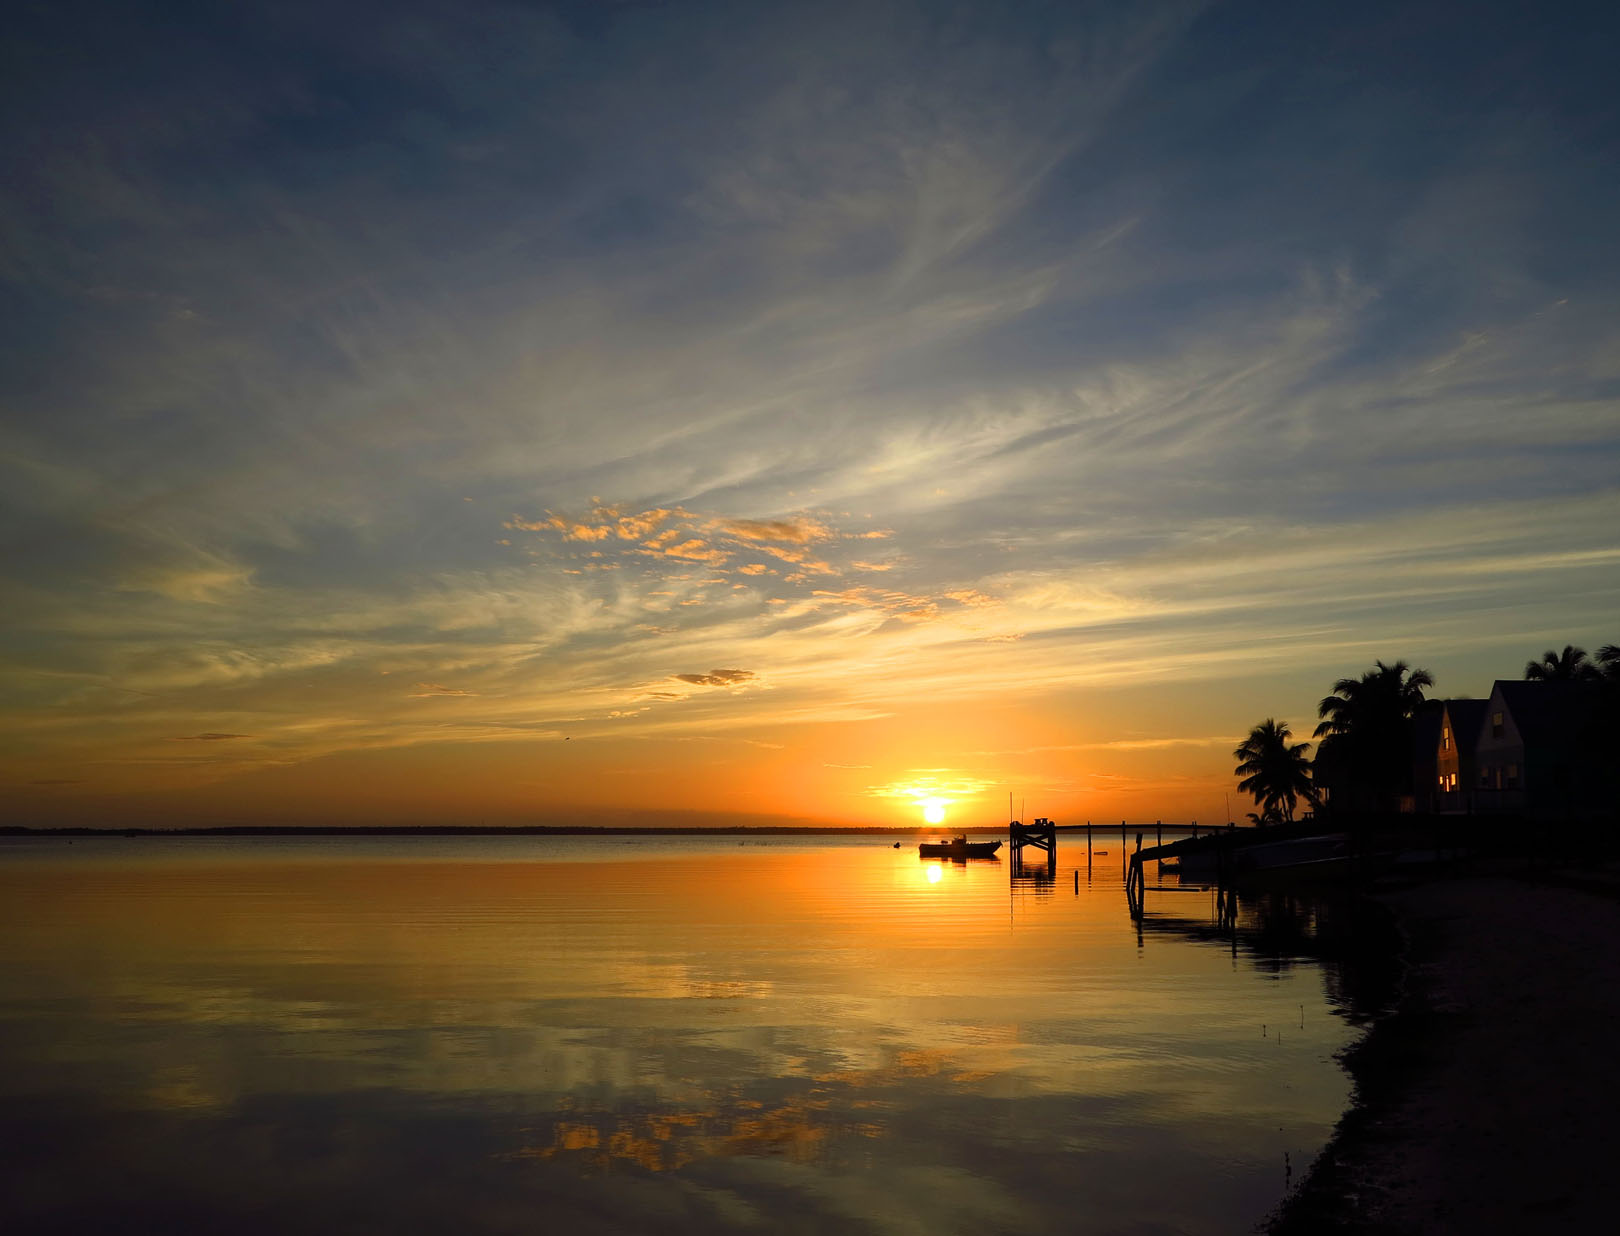 Sunset Over South Beach - Green Turtle Cay, Abaco, Bahamas